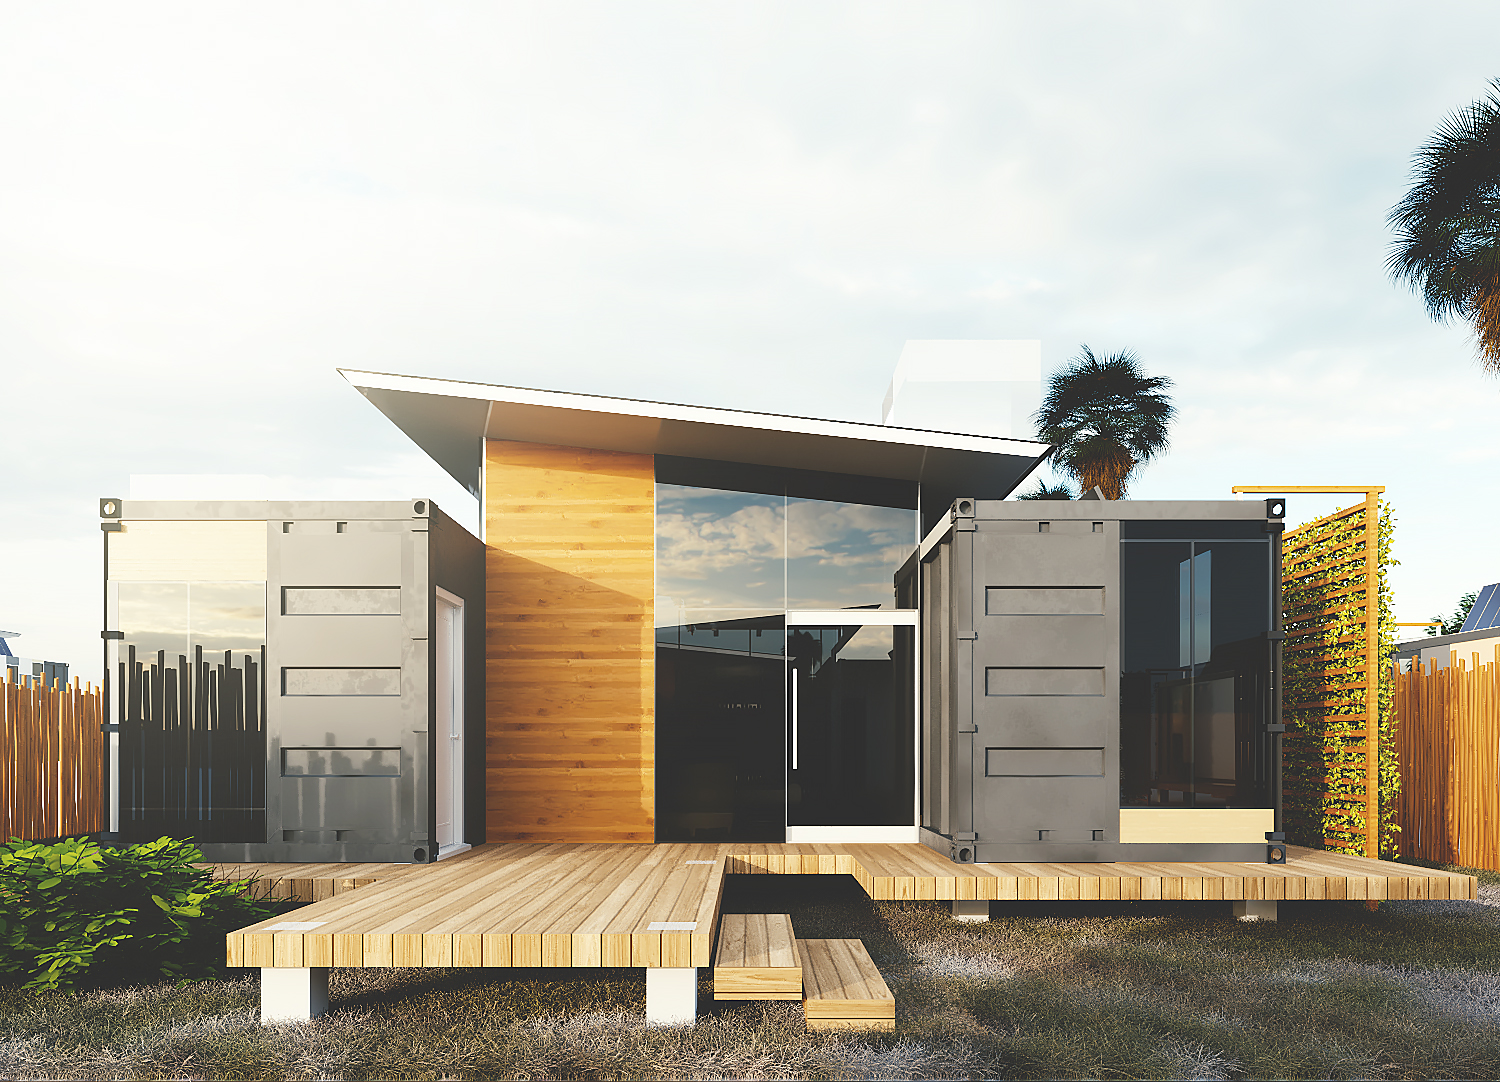 RESIDENTIAL DESIGN WITH CONTAINER